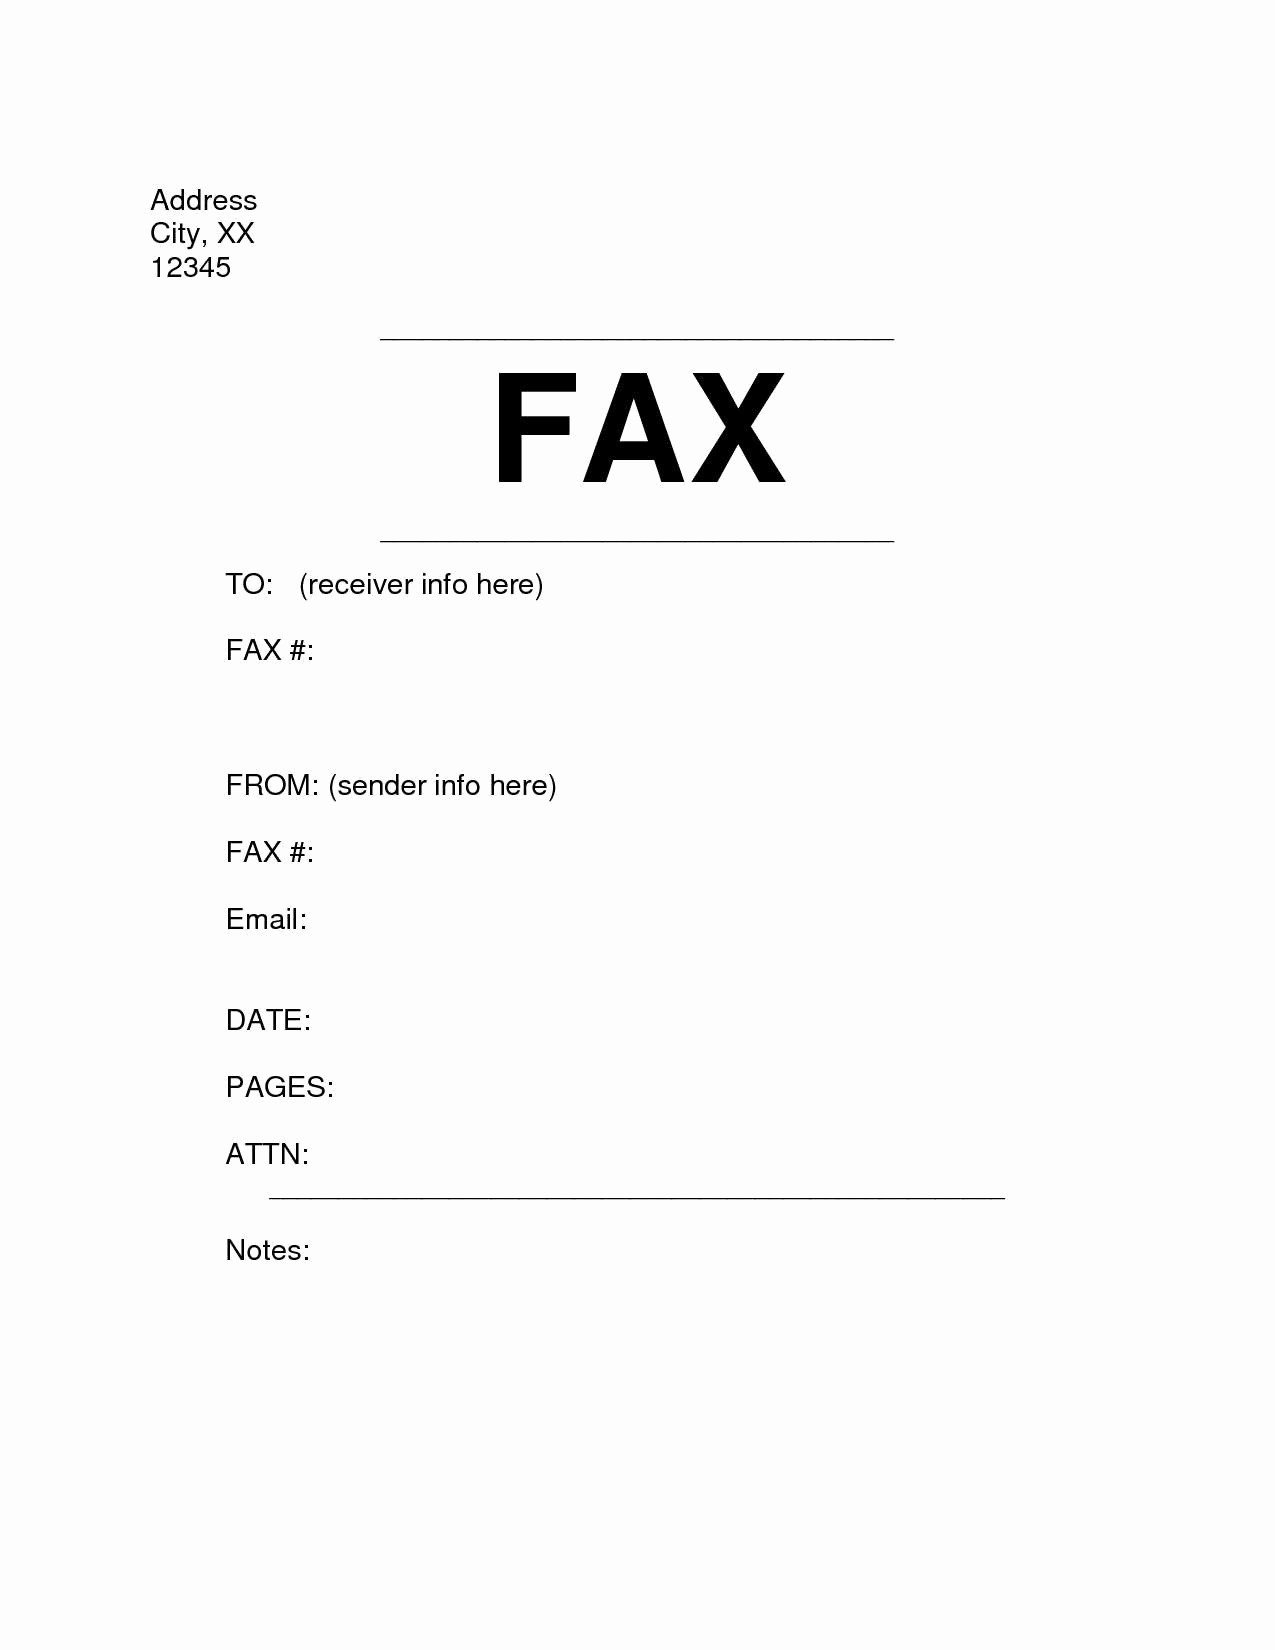 Fax Template In Word 2010 Lovely Microsoft Word Fax Cover Letter Template Examples